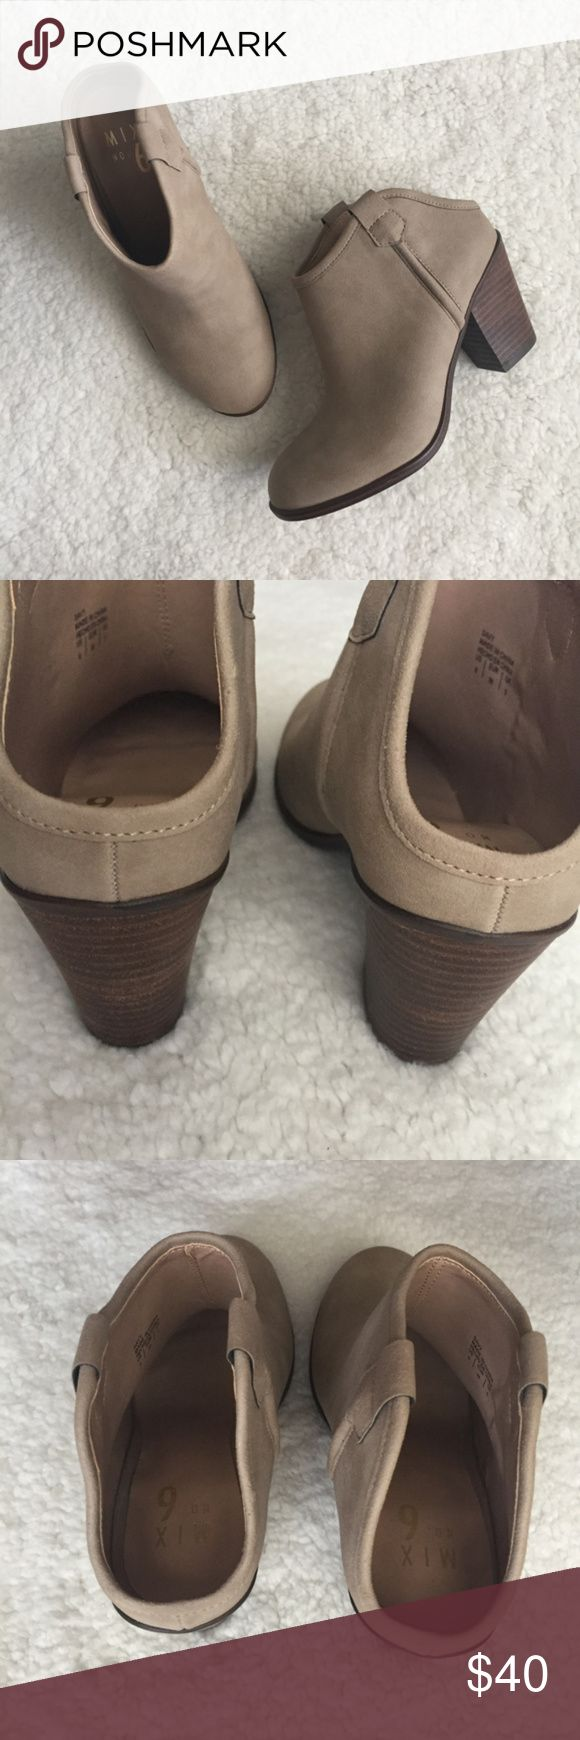 """Mix No 6 Women's Mule Inspired Booties SZ 6 Mix No 6 Women's Mule Inspired Western Taupe Booties Size 6  Unused, Faux suede upper, Side pull tabs, Round toe, Synthetic sole. Heel: 3"""" stack block. Last picture for style only.  11.25 Mix No. 6 Shoes Mules & Clogs"""